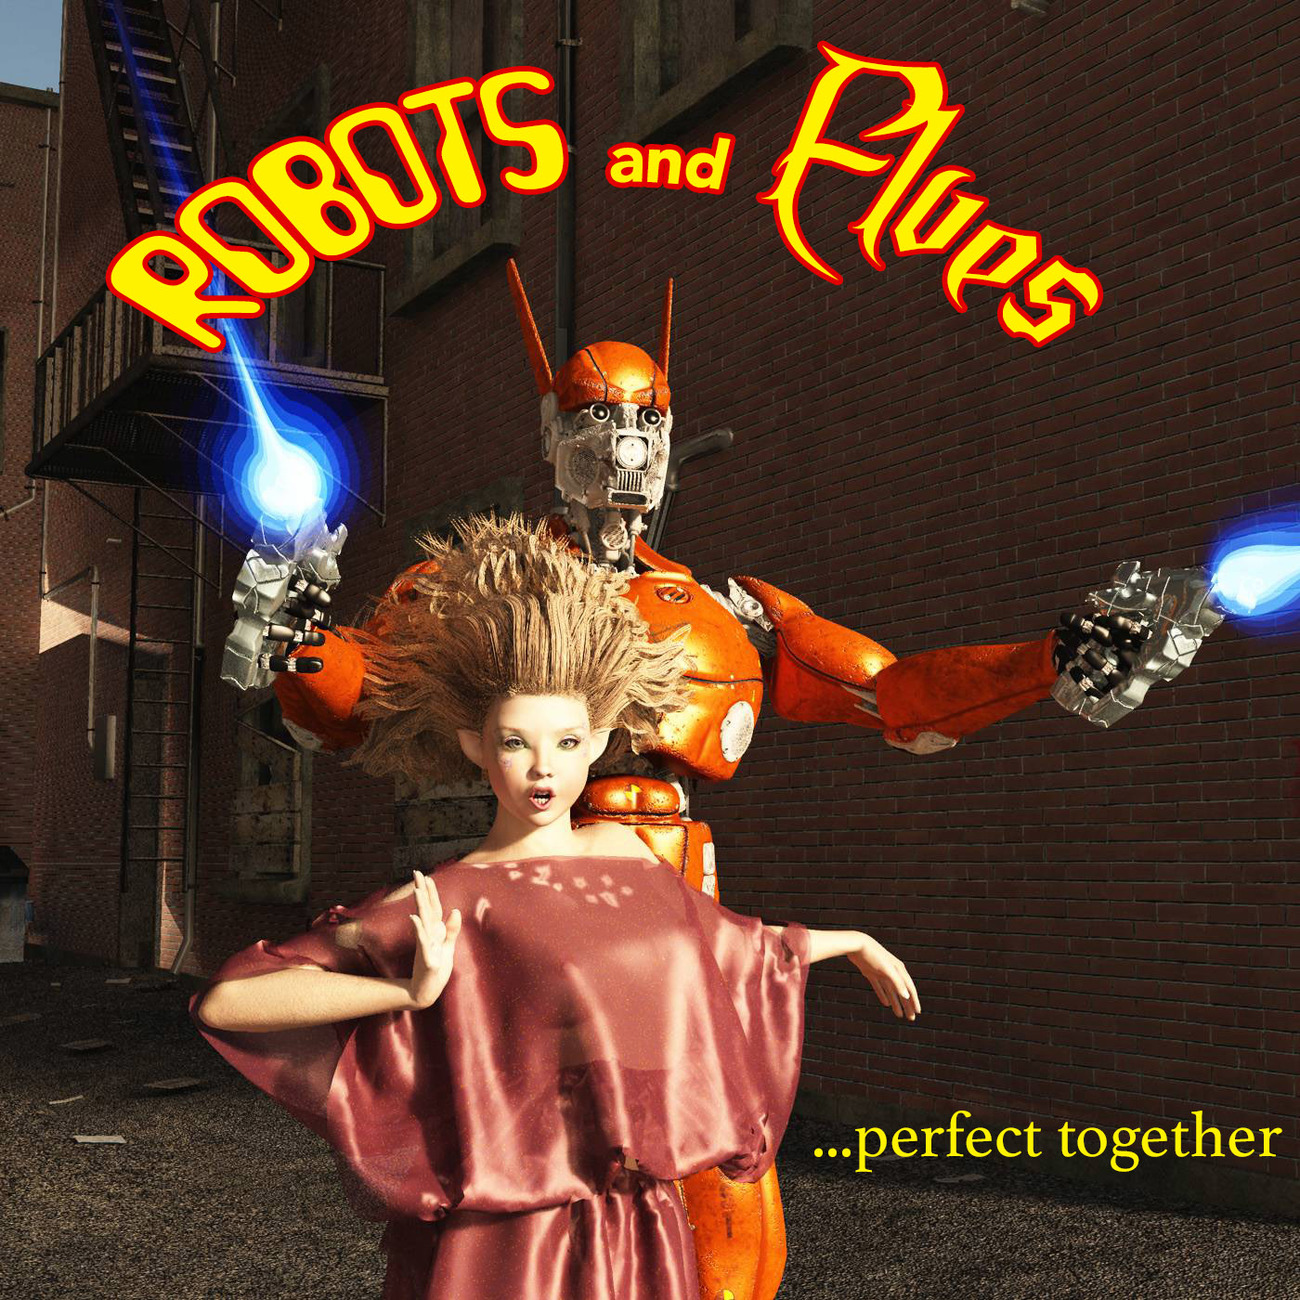 Robots and Elves: Perfect Together